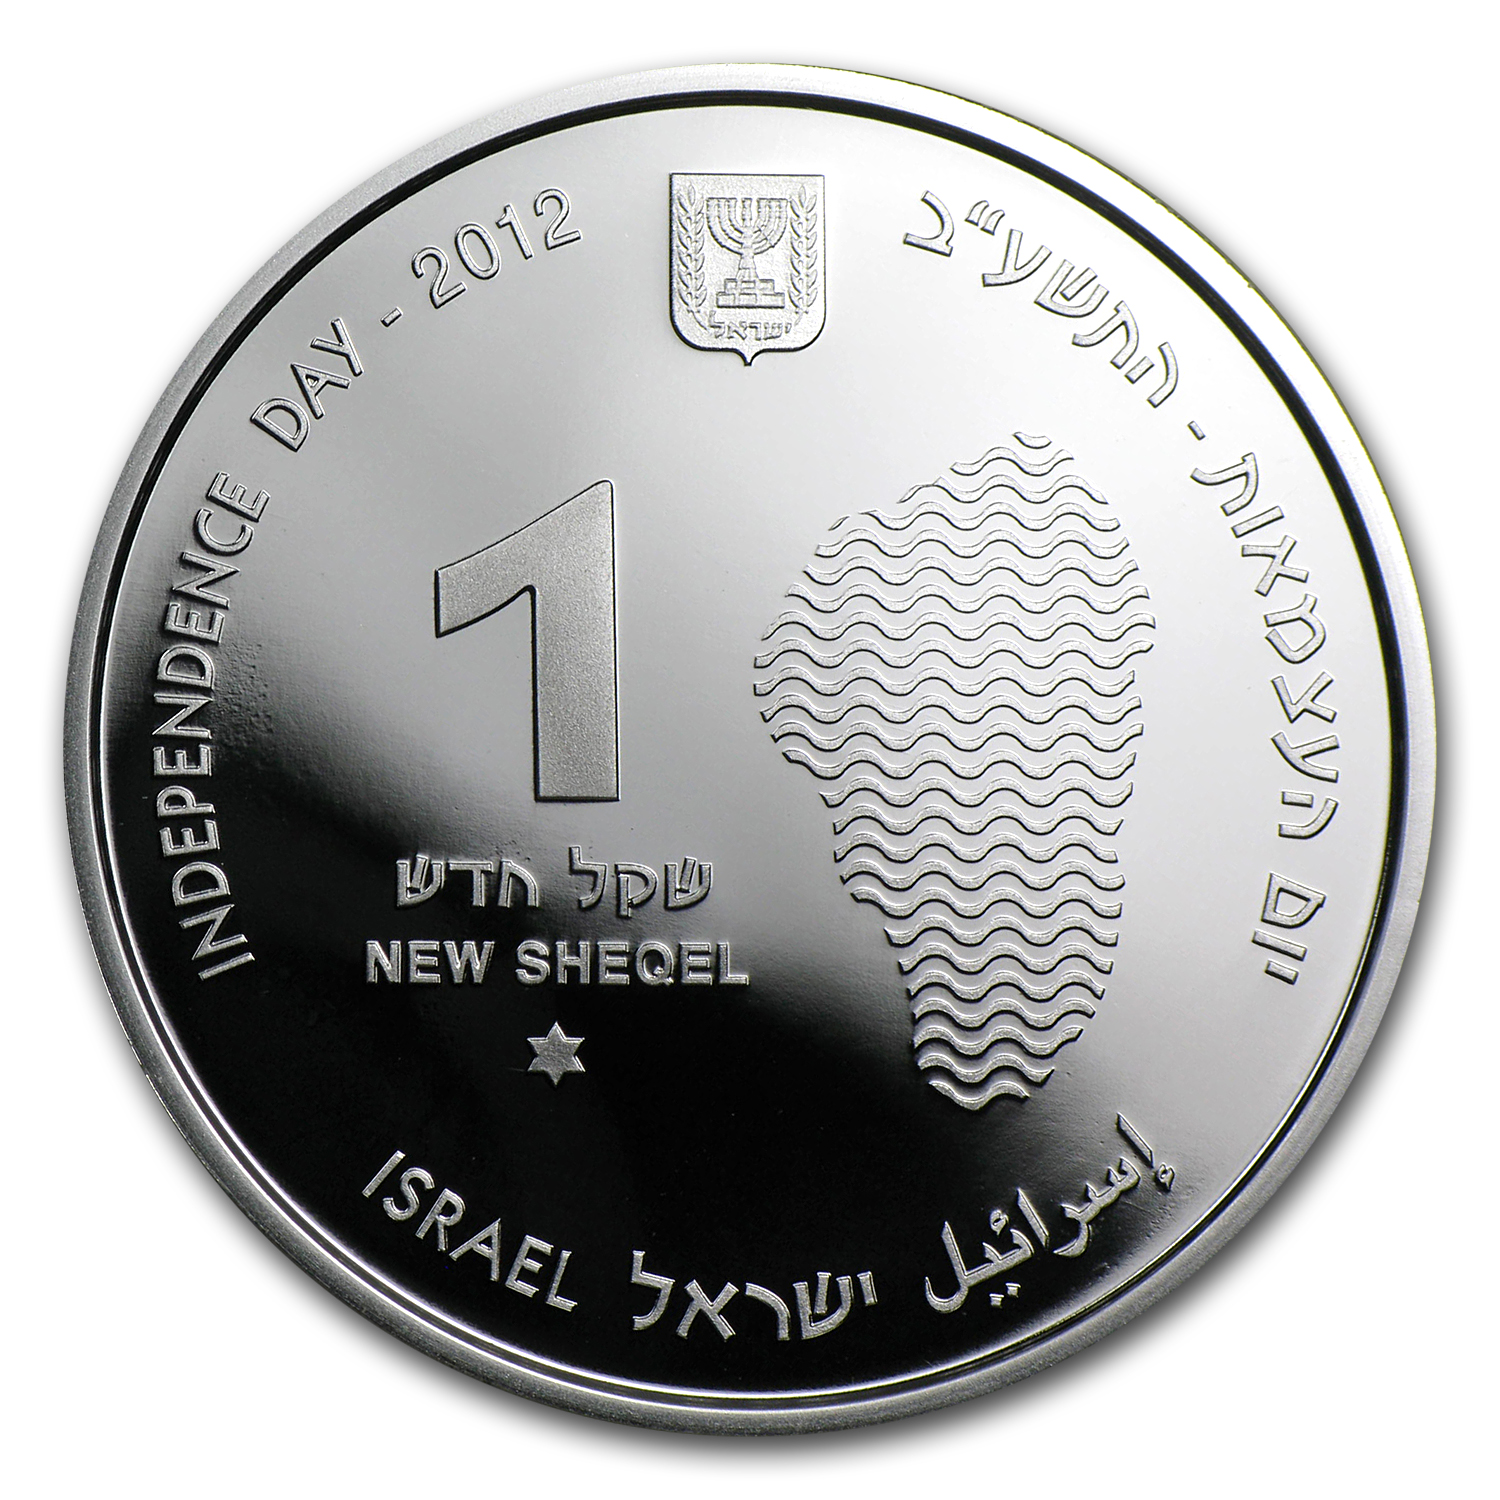 2012 Israel Silver 1 NIS Sea of Galilee Proof-like